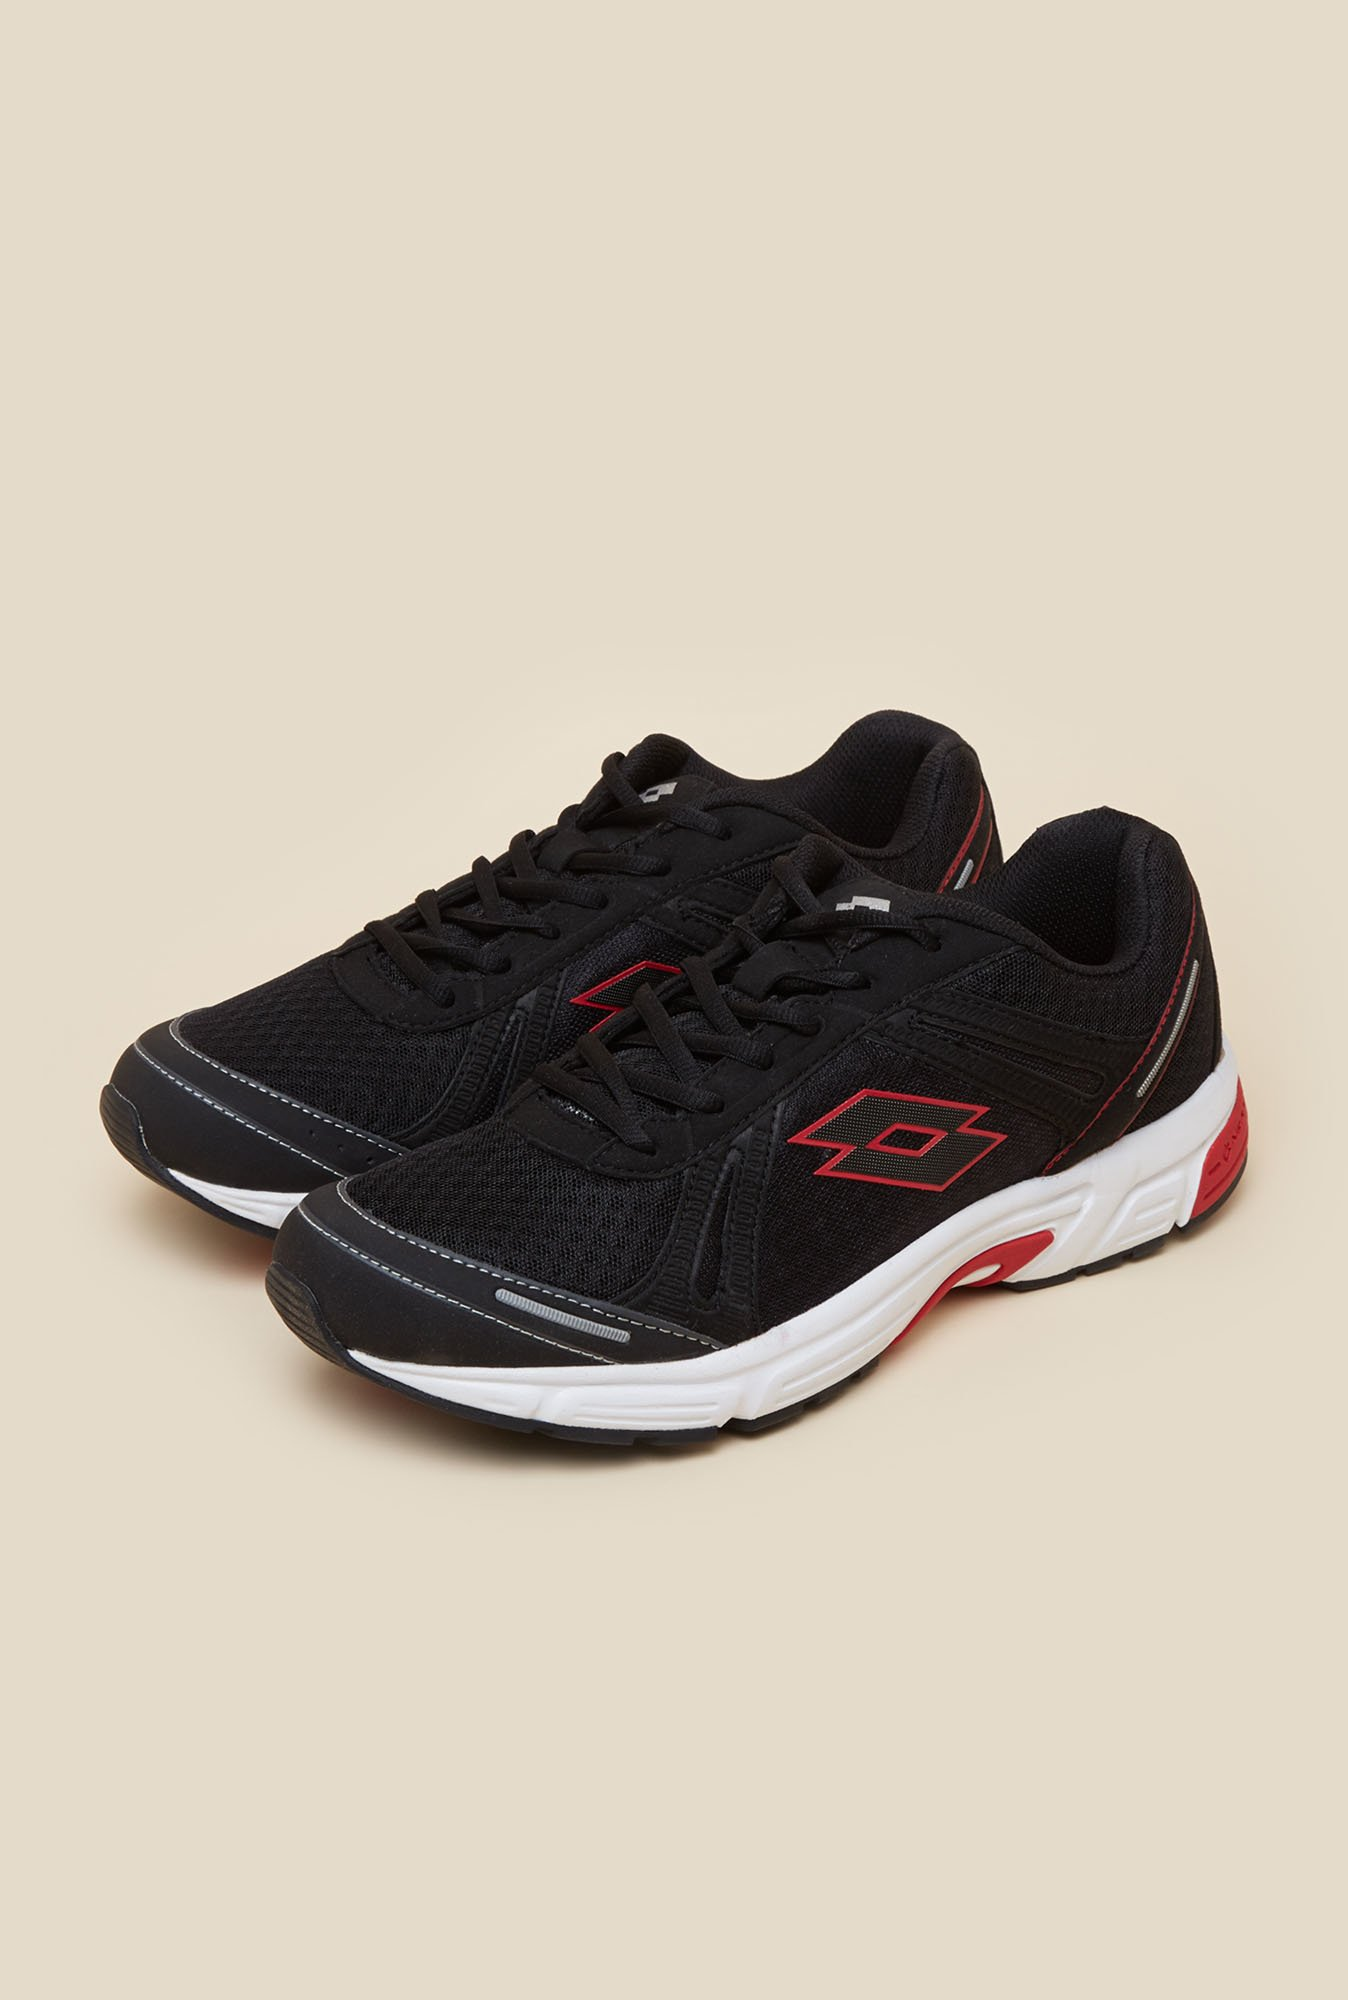 Lotto Venture II Black Running Shoes